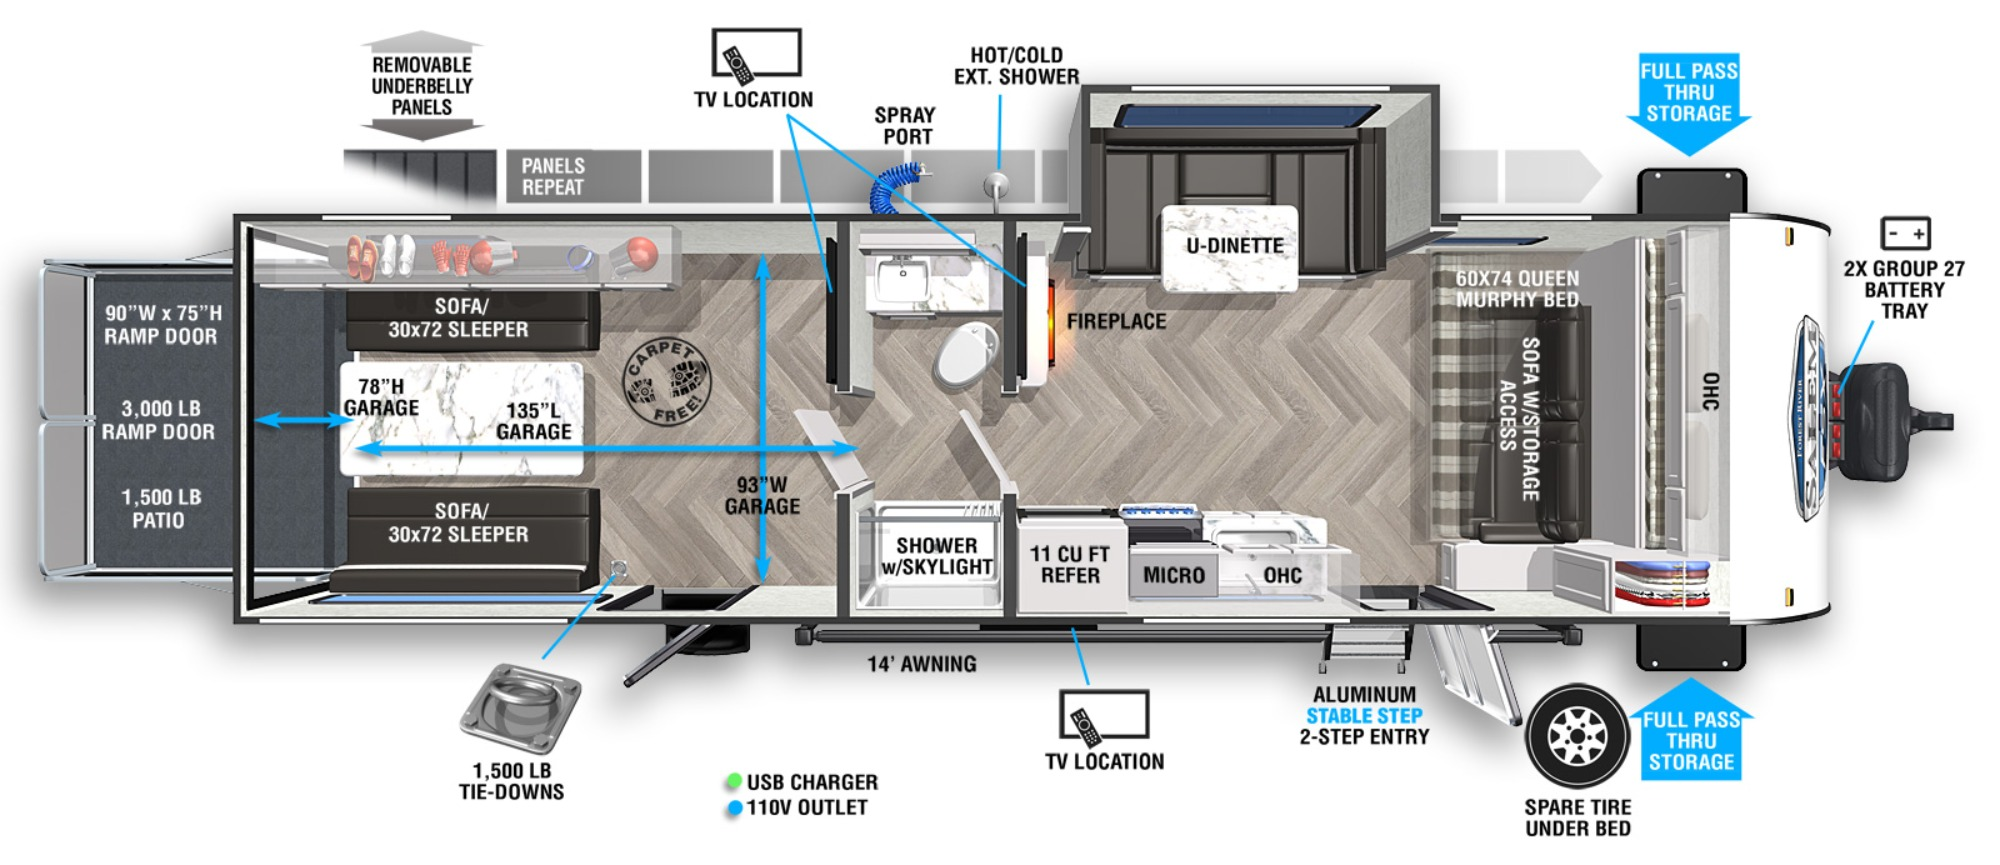 View Floor Plan for 2022 FOREST RIVER SALEM FSX 280RTX